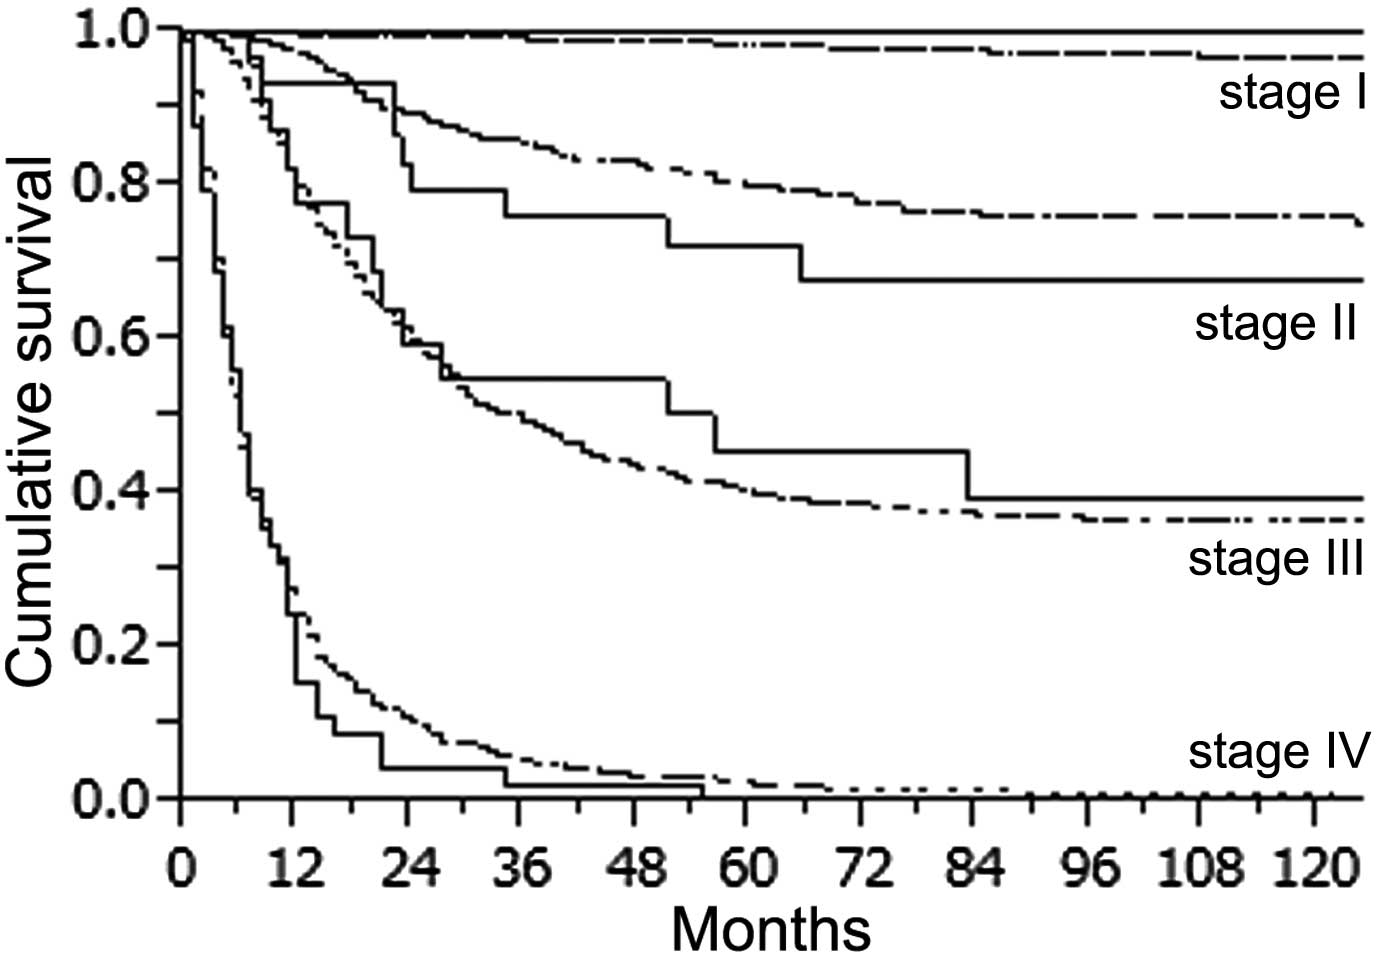 Characteristics And Prognosis Of Gastric Cancer In Young Patients